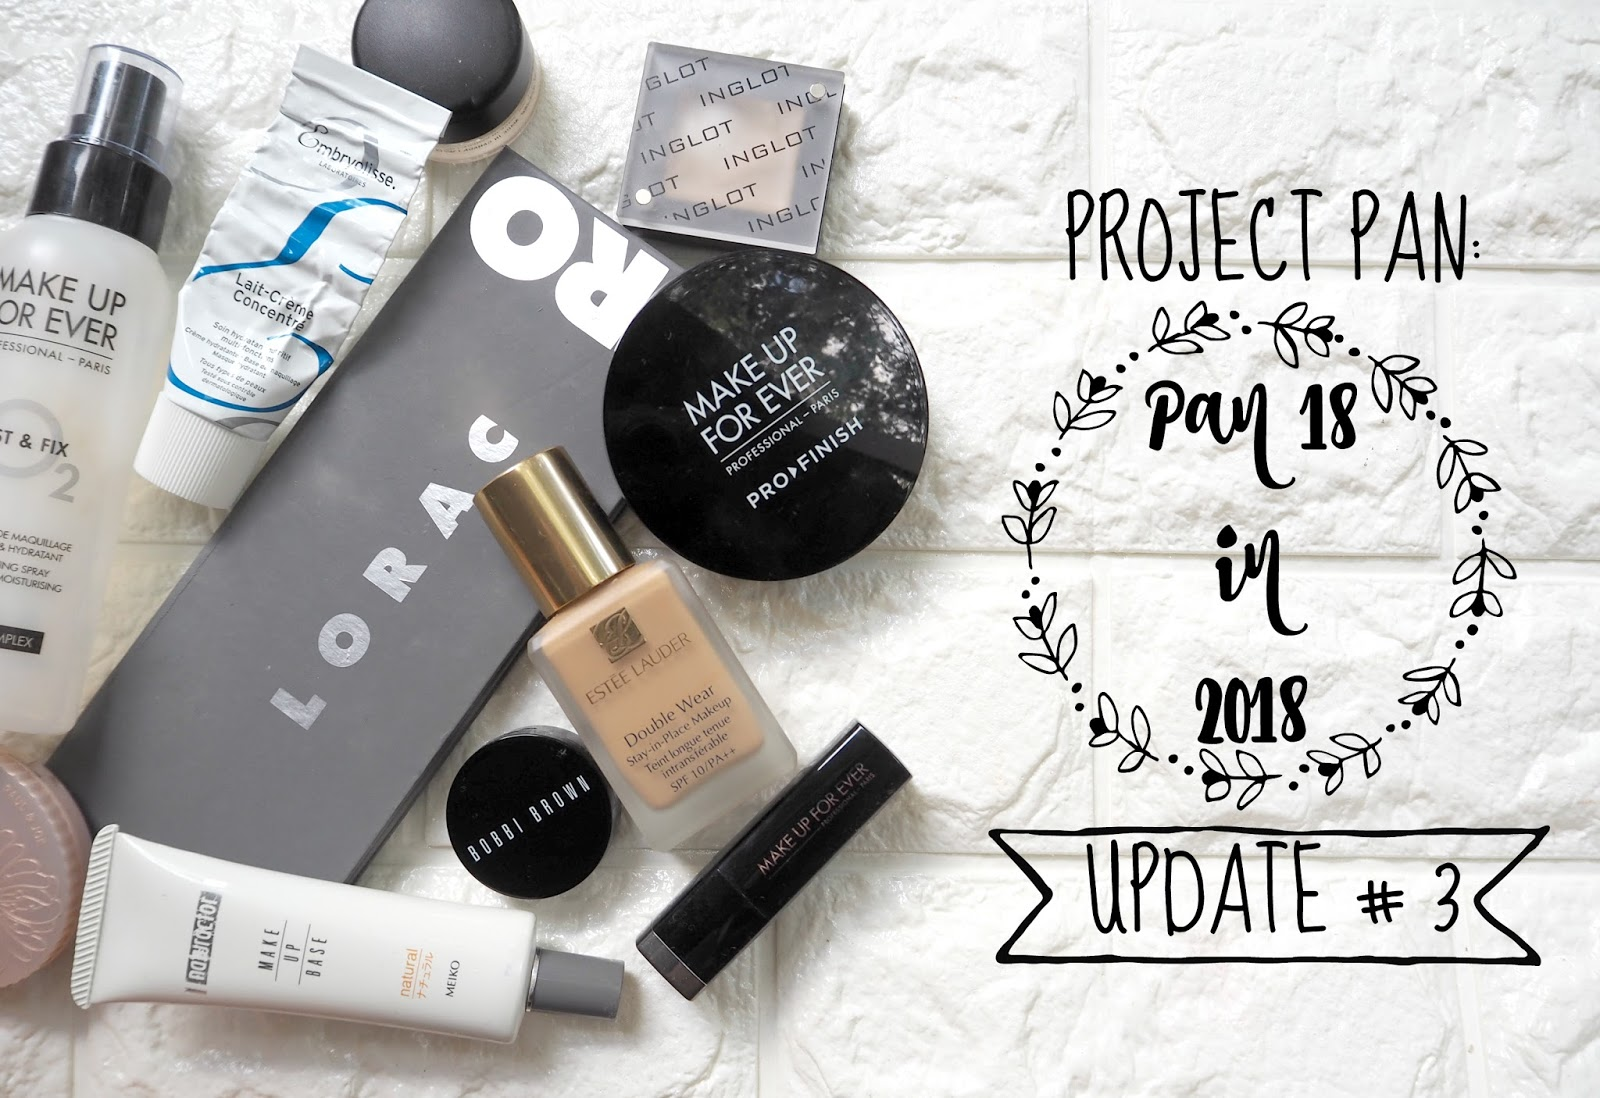 www.poshmakeupnstuff.blogspot.com: Project Pan: Pan 18 in 2018 Update # 3